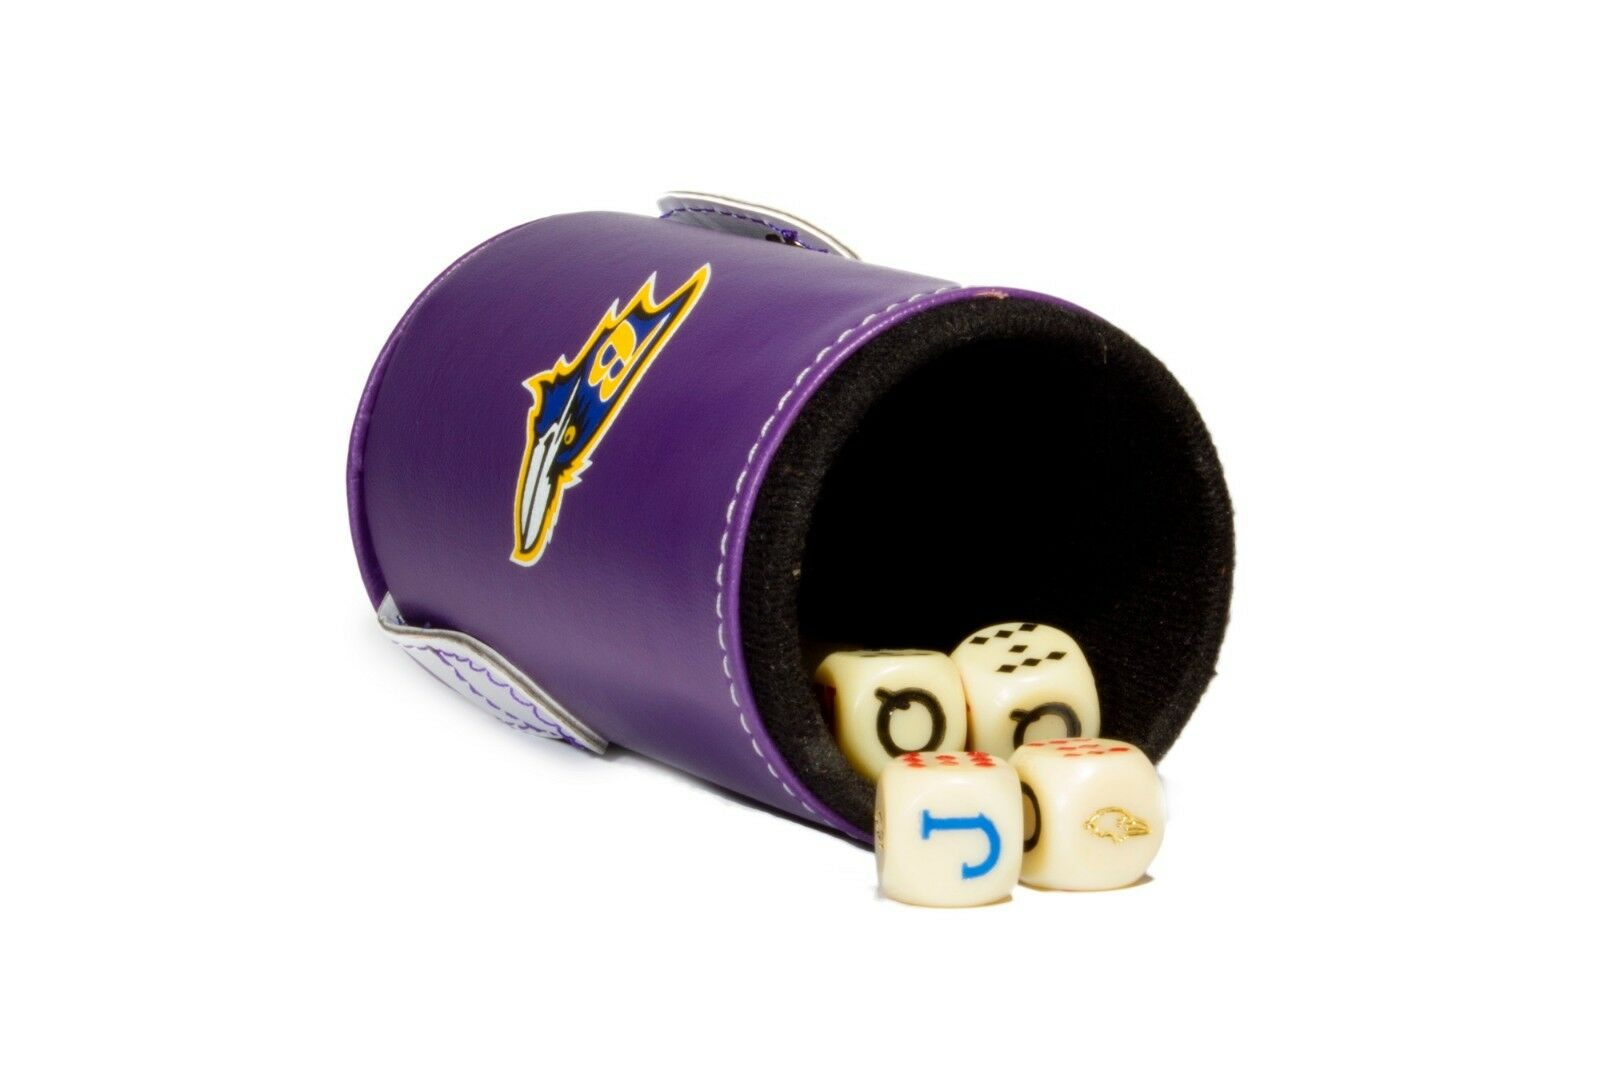 Baltimore Ravens Dice Cup with with with Storage Compartment. 5 Engraved Poker Dice e89009